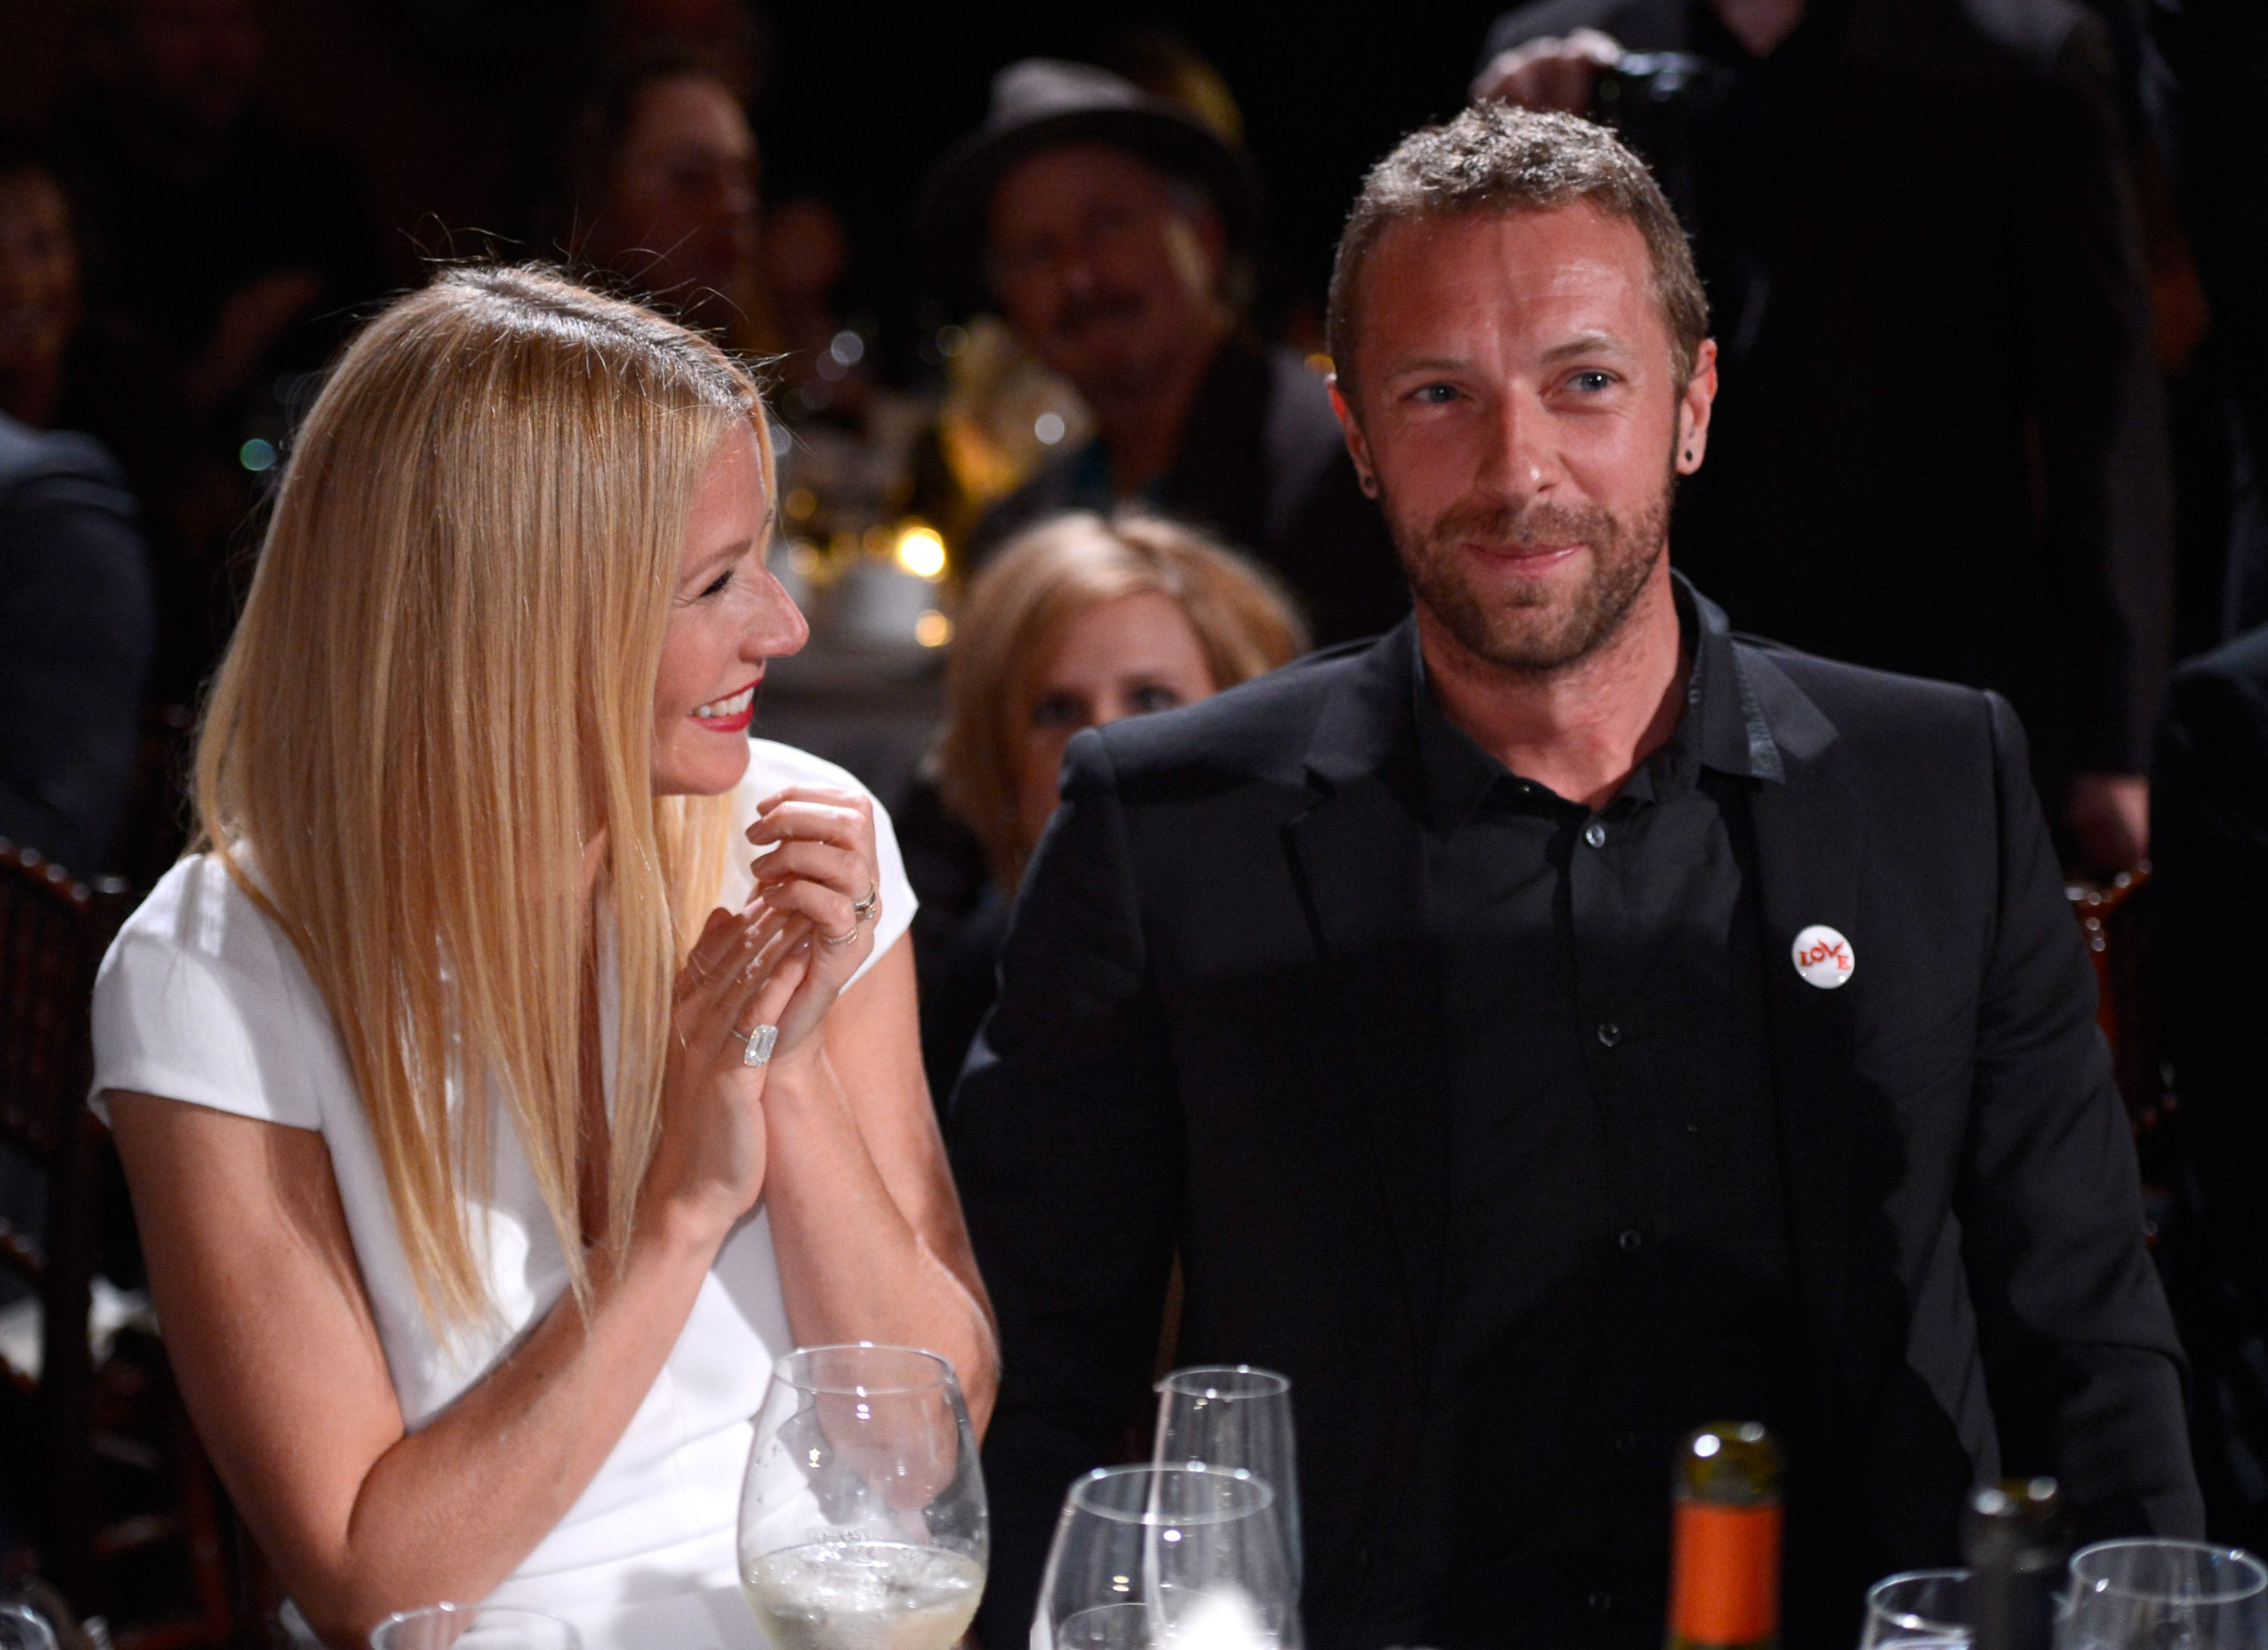 Image Credits: Getty Images / Gwyneth Paltrow and Chris Martin were married for ten years